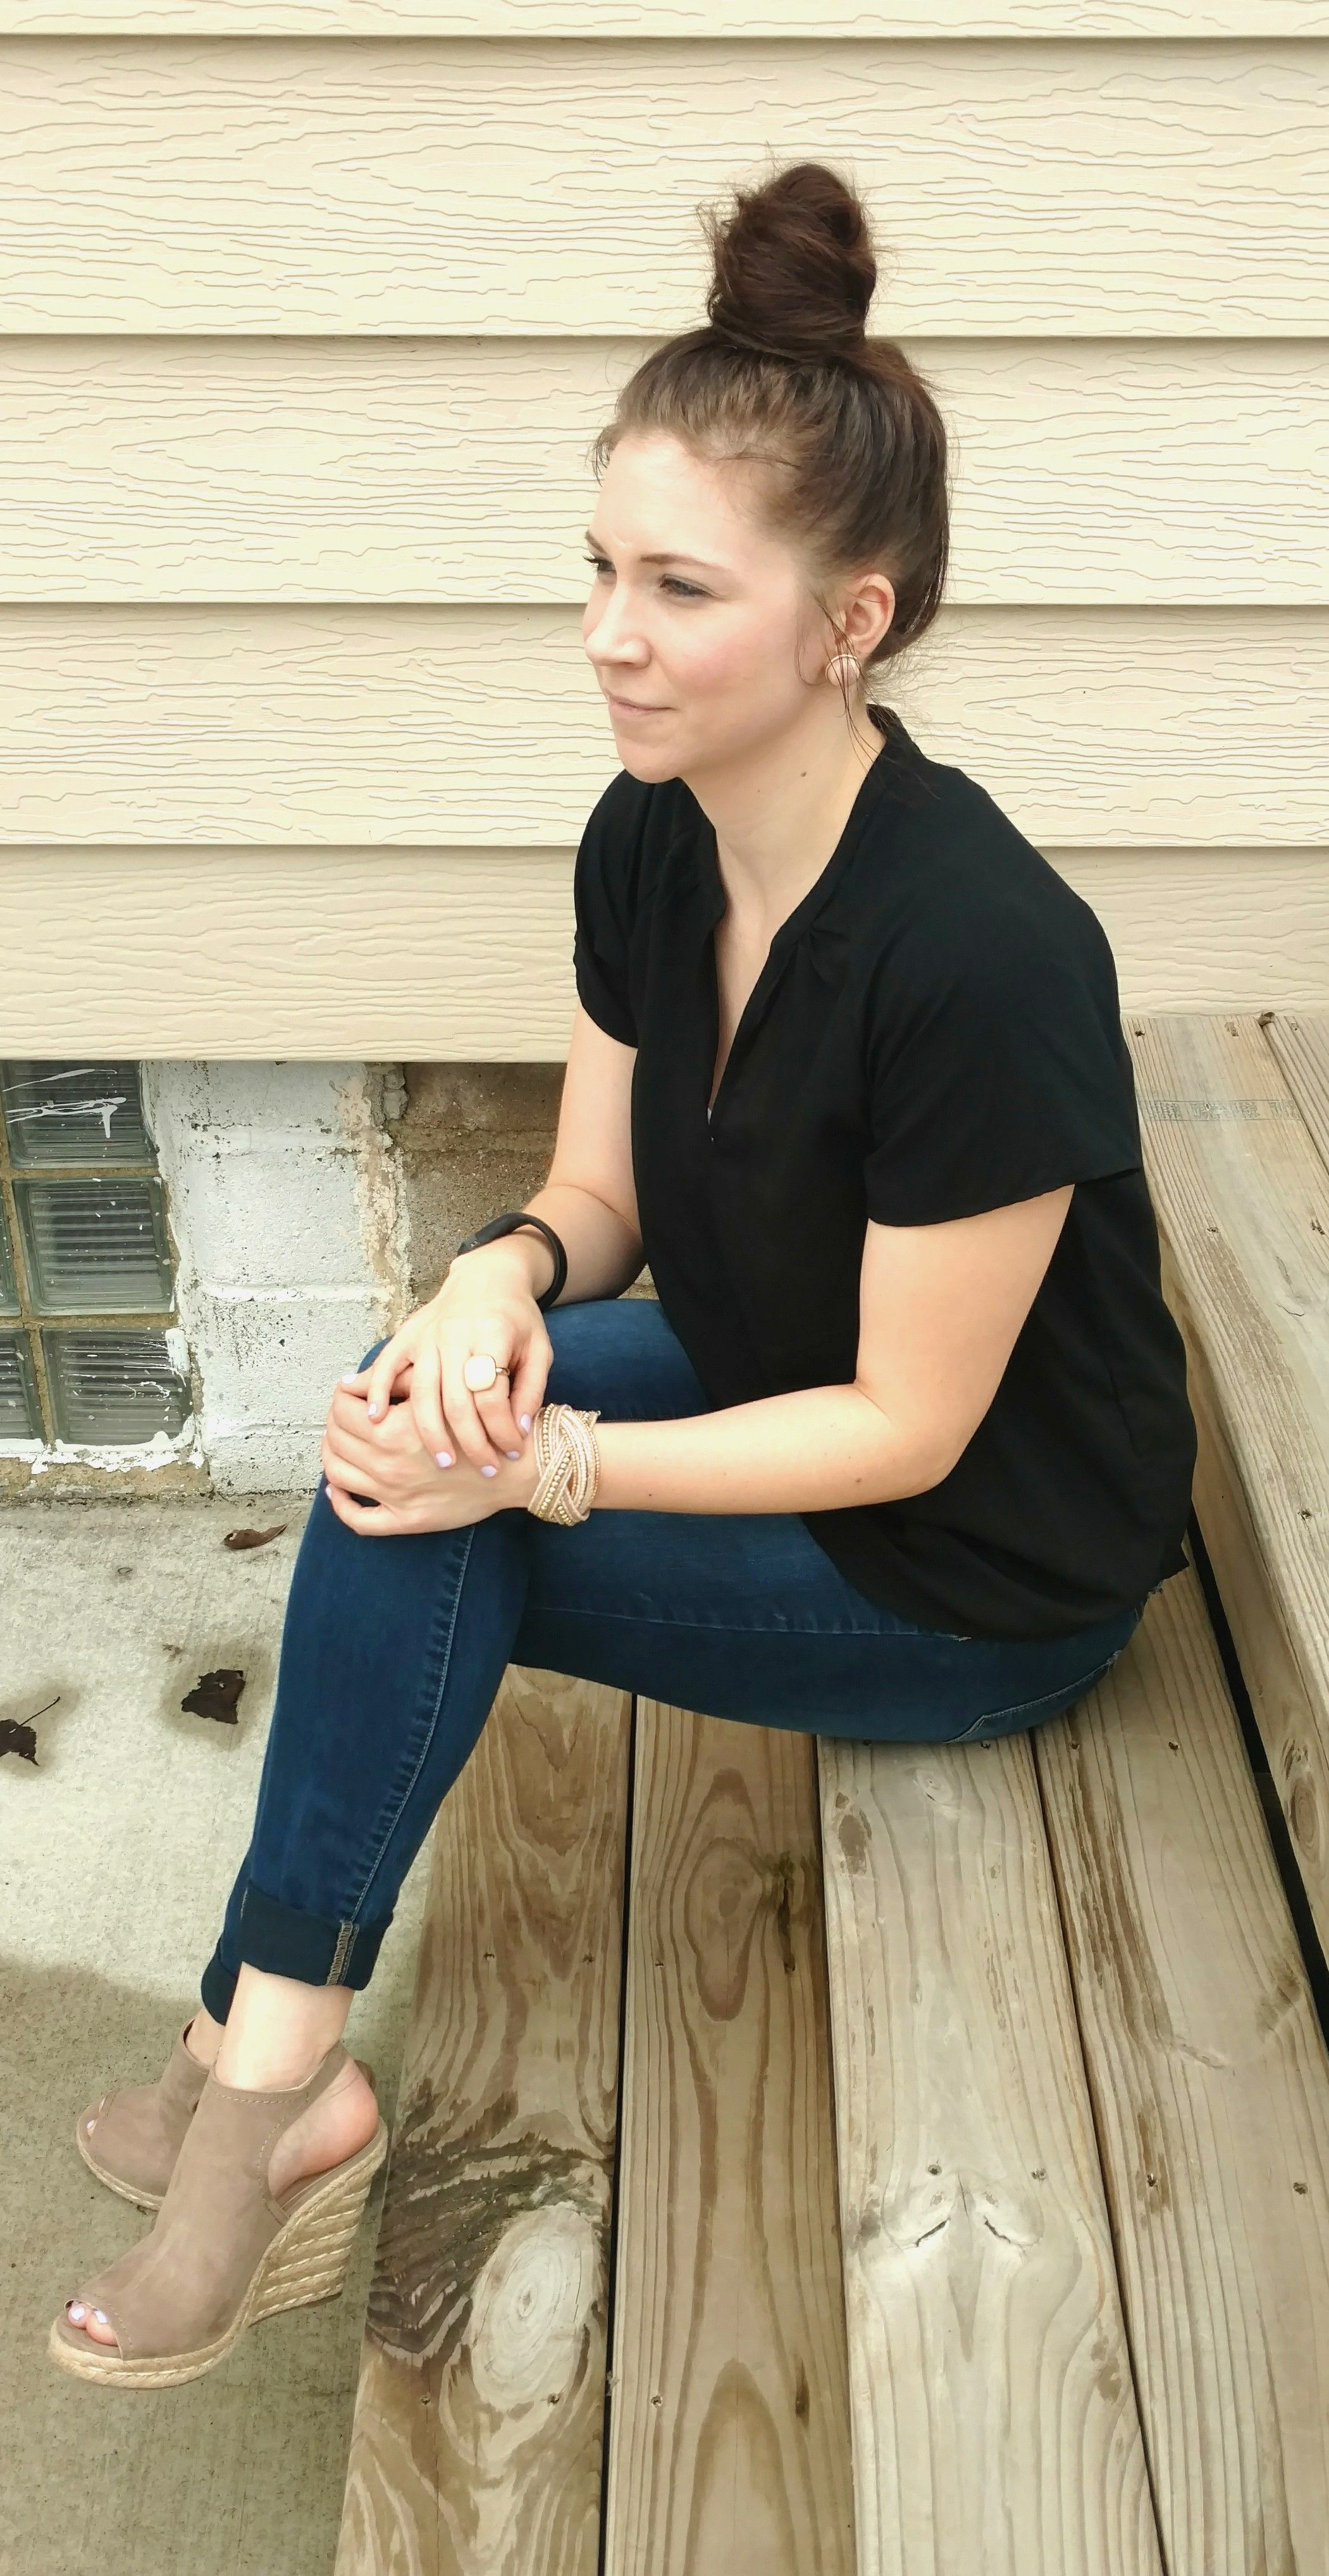 Style by Melissa Ann / / Simple Spring Outfit: jeans, black top, brown wedges, and statement jewelry